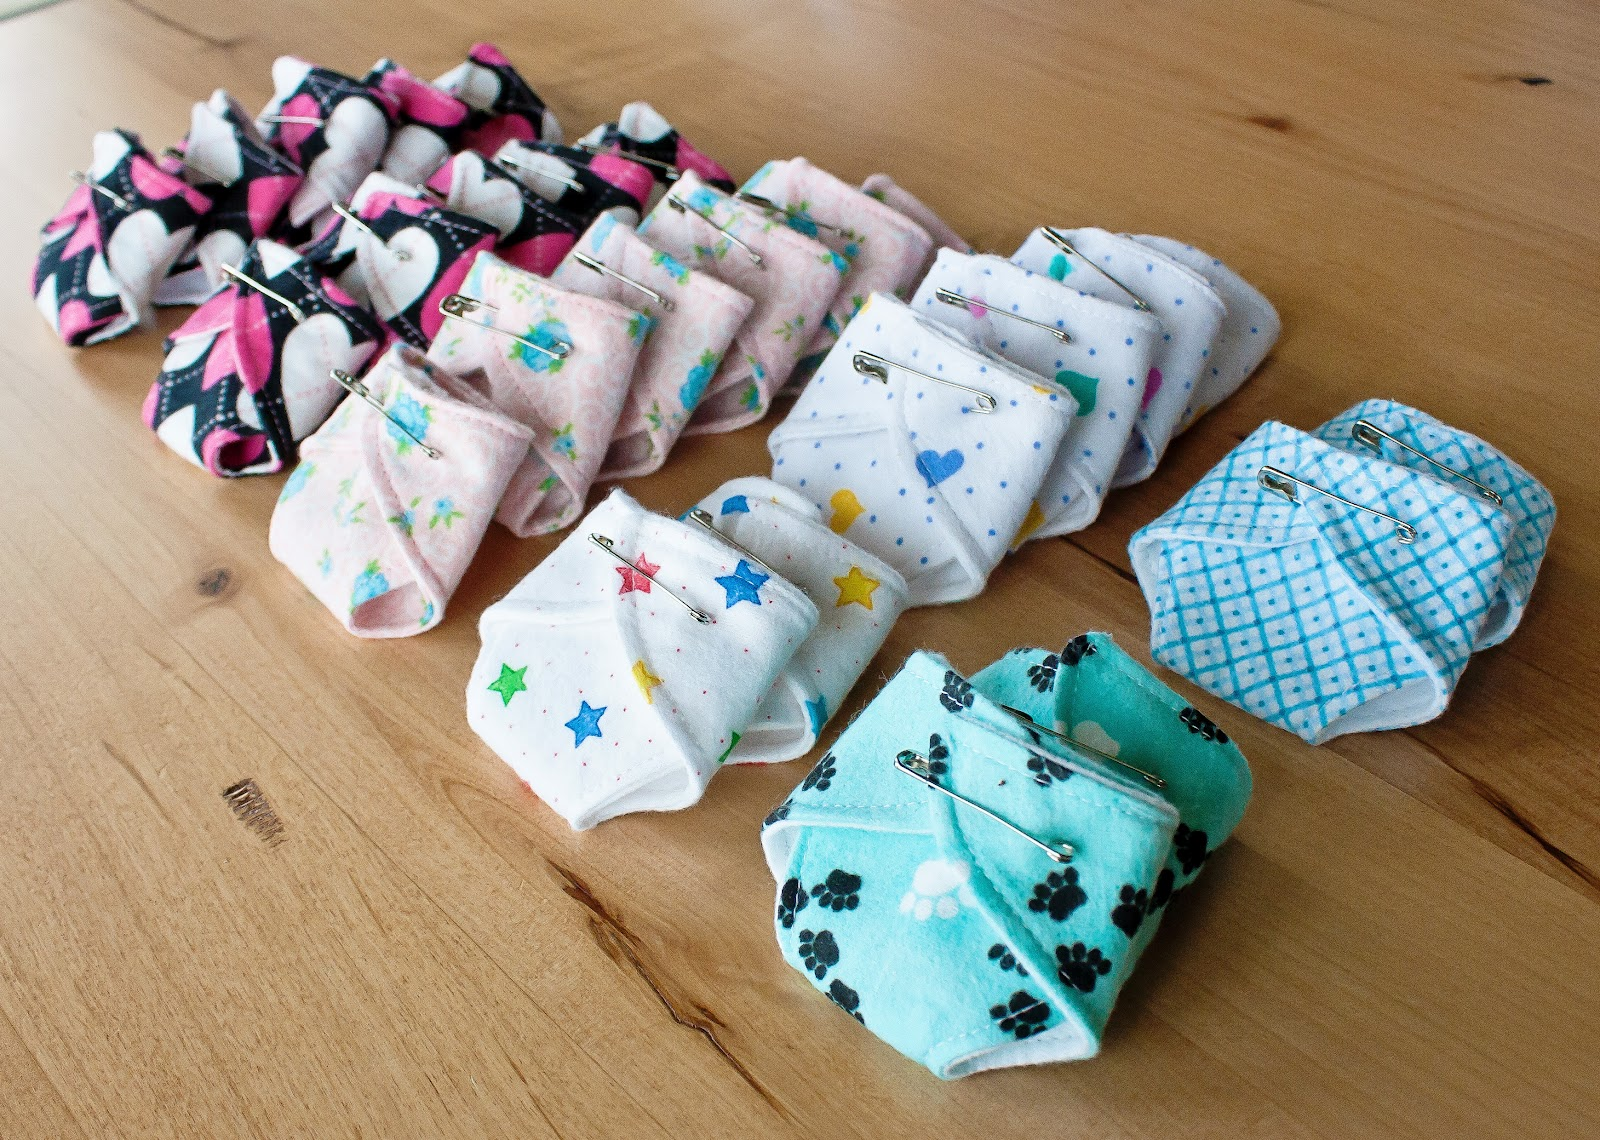 bitties that were sewn together by Sveta, one of our SLC Diaper Divas